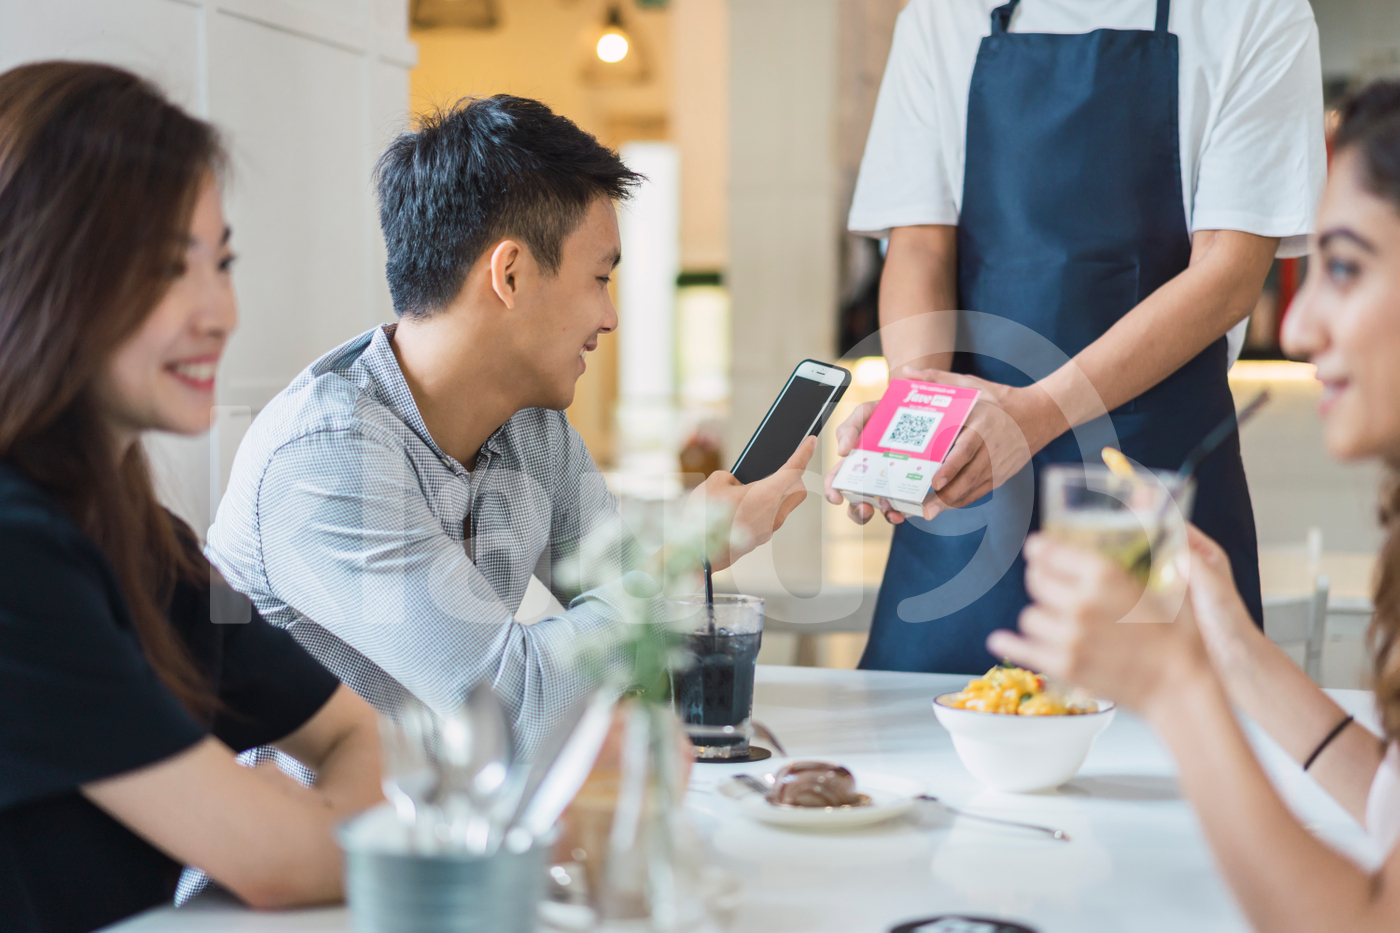 Asian man making payment with mobile at table